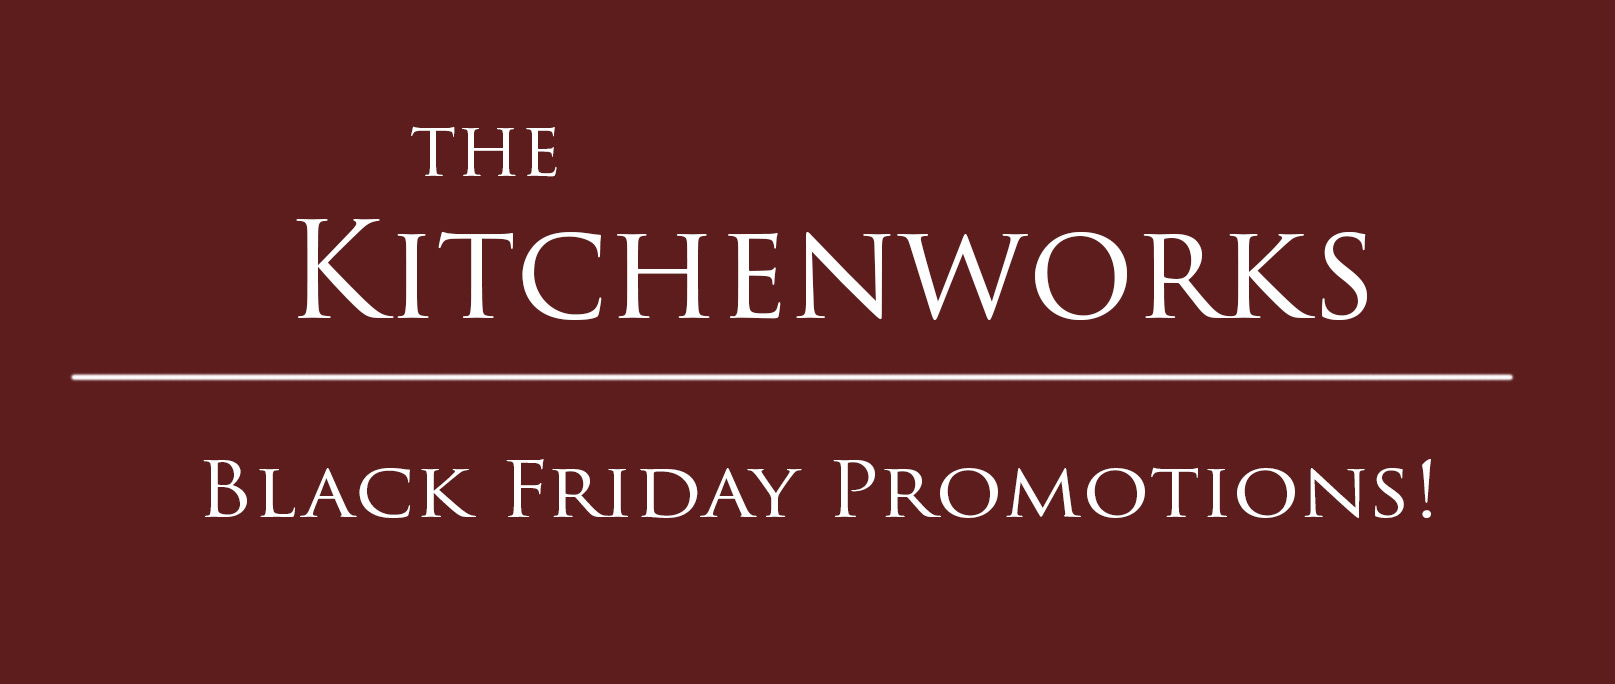 Black Friday Special Promotions November 2019 The Kitchenworks